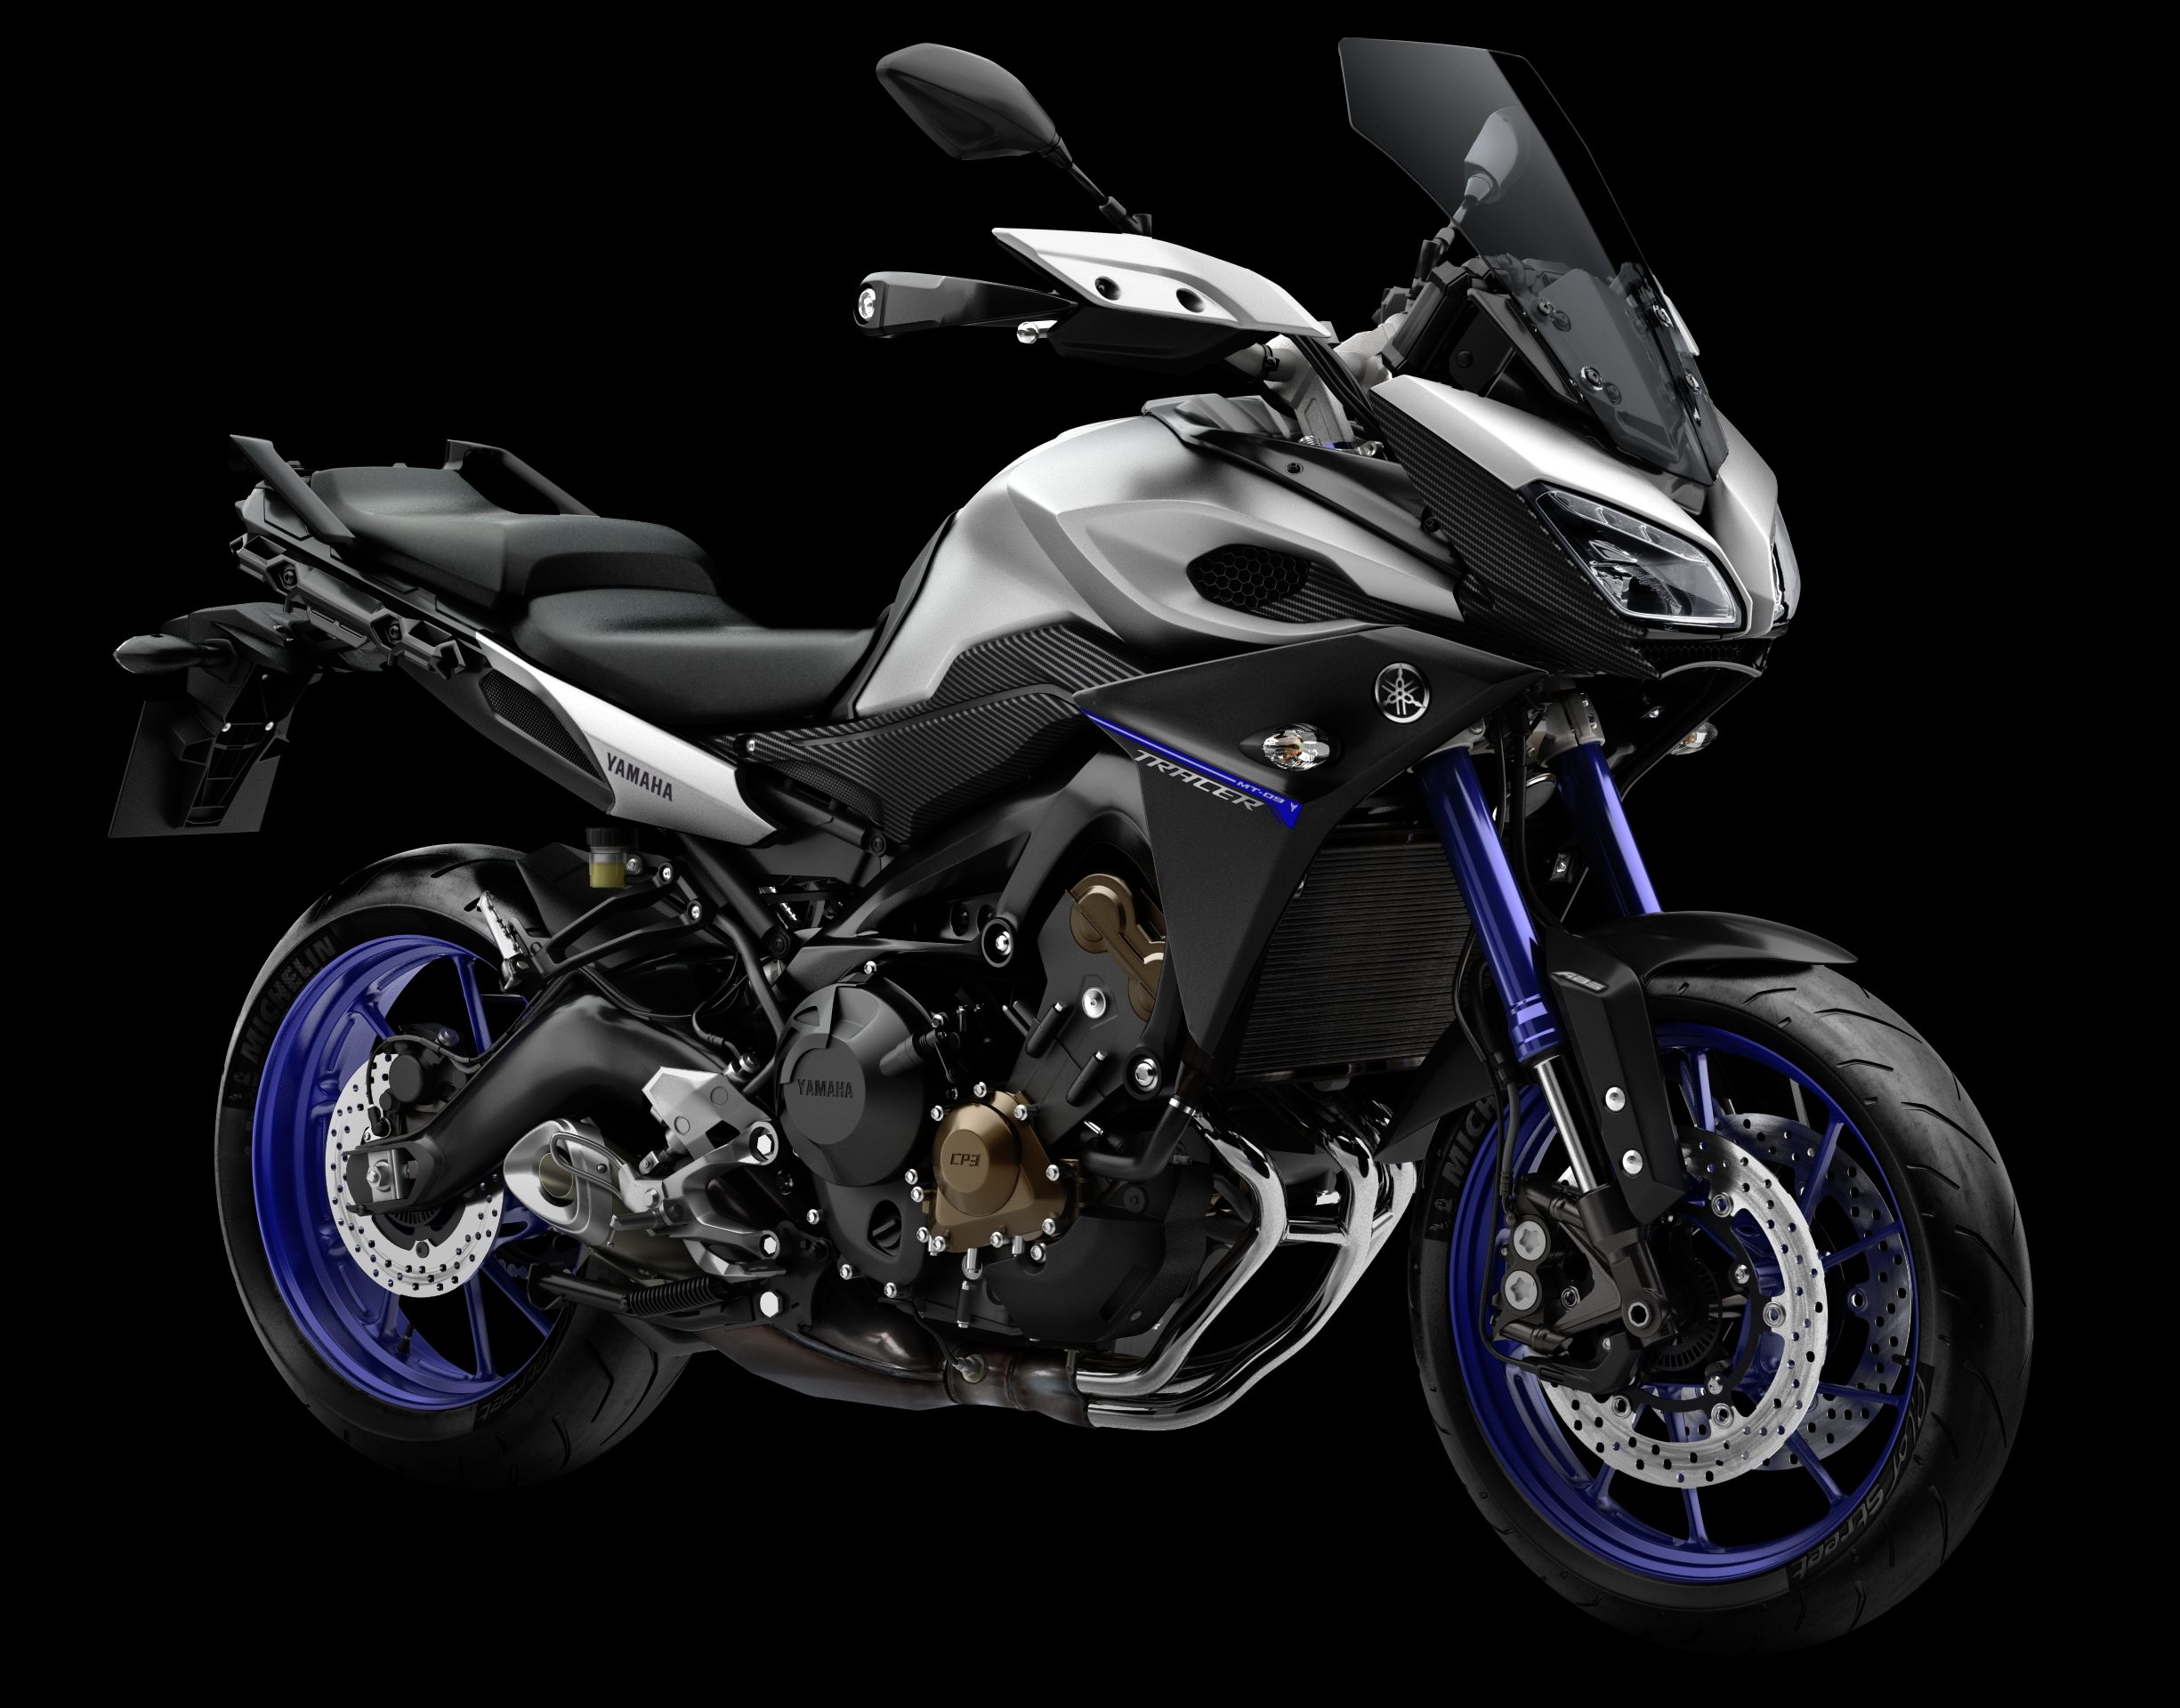 2016 yamaha mt 09 tracer in malaysia rm59 900 image 514858. Black Bedroom Furniture Sets. Home Design Ideas